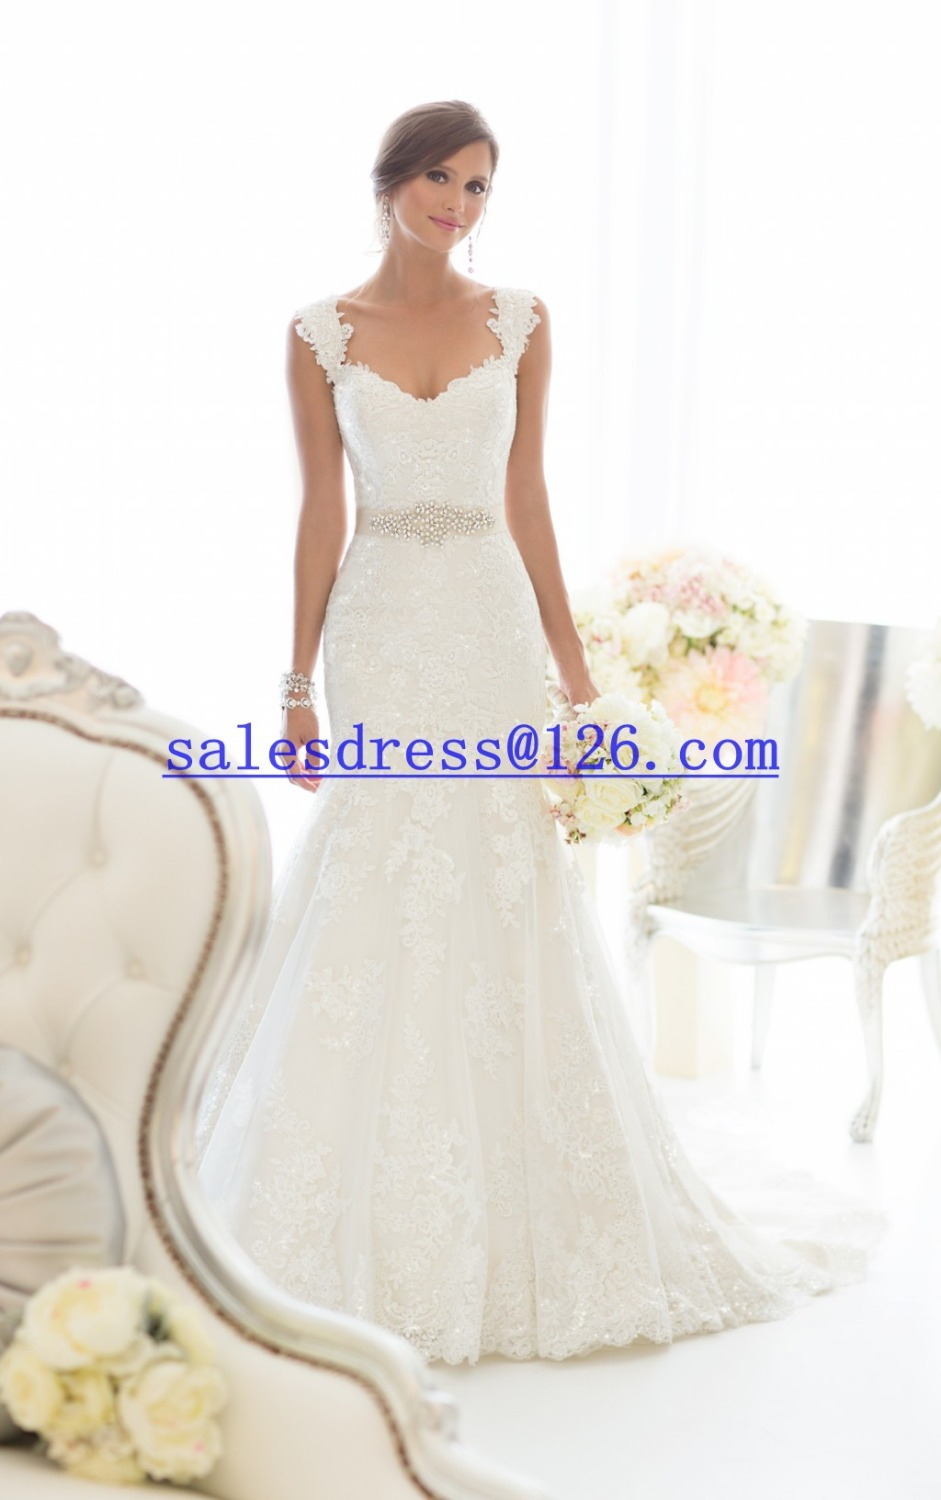 Vestido de noiva  romantic cap sleeves Mermaid Wedding Dresses Bead Belt Sexy vestido de casamento 2015 Bridal Gown